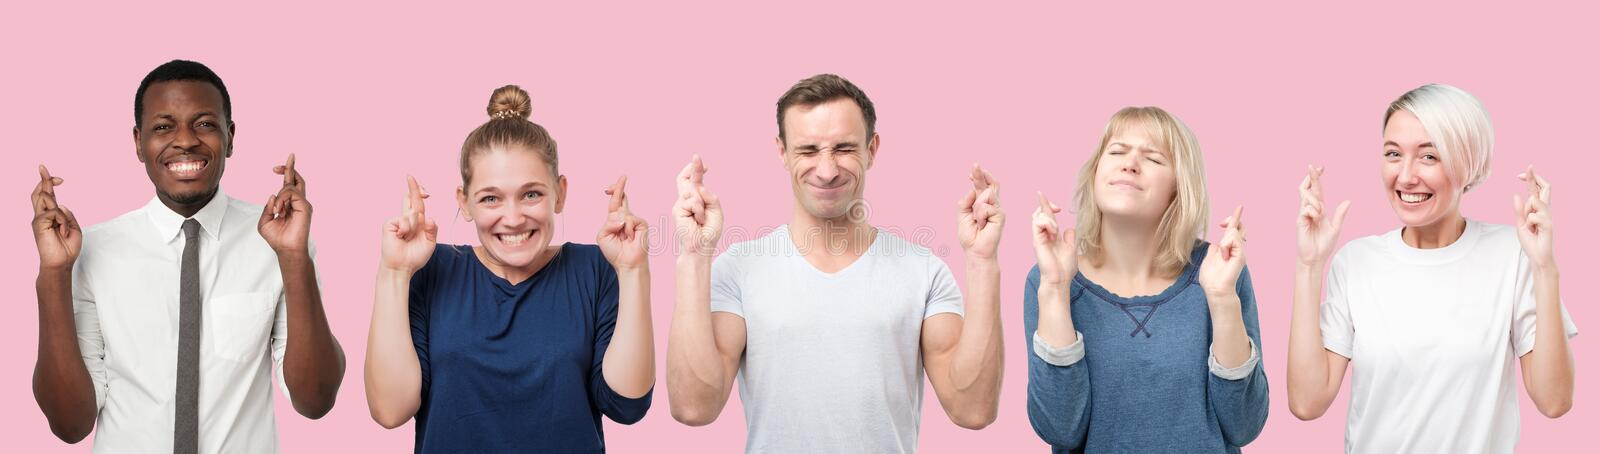 Happy people rejoice that dreams came true. Collage of men and women crossing fingers, closes anticipate hearing good news, isolated pink background stock photos